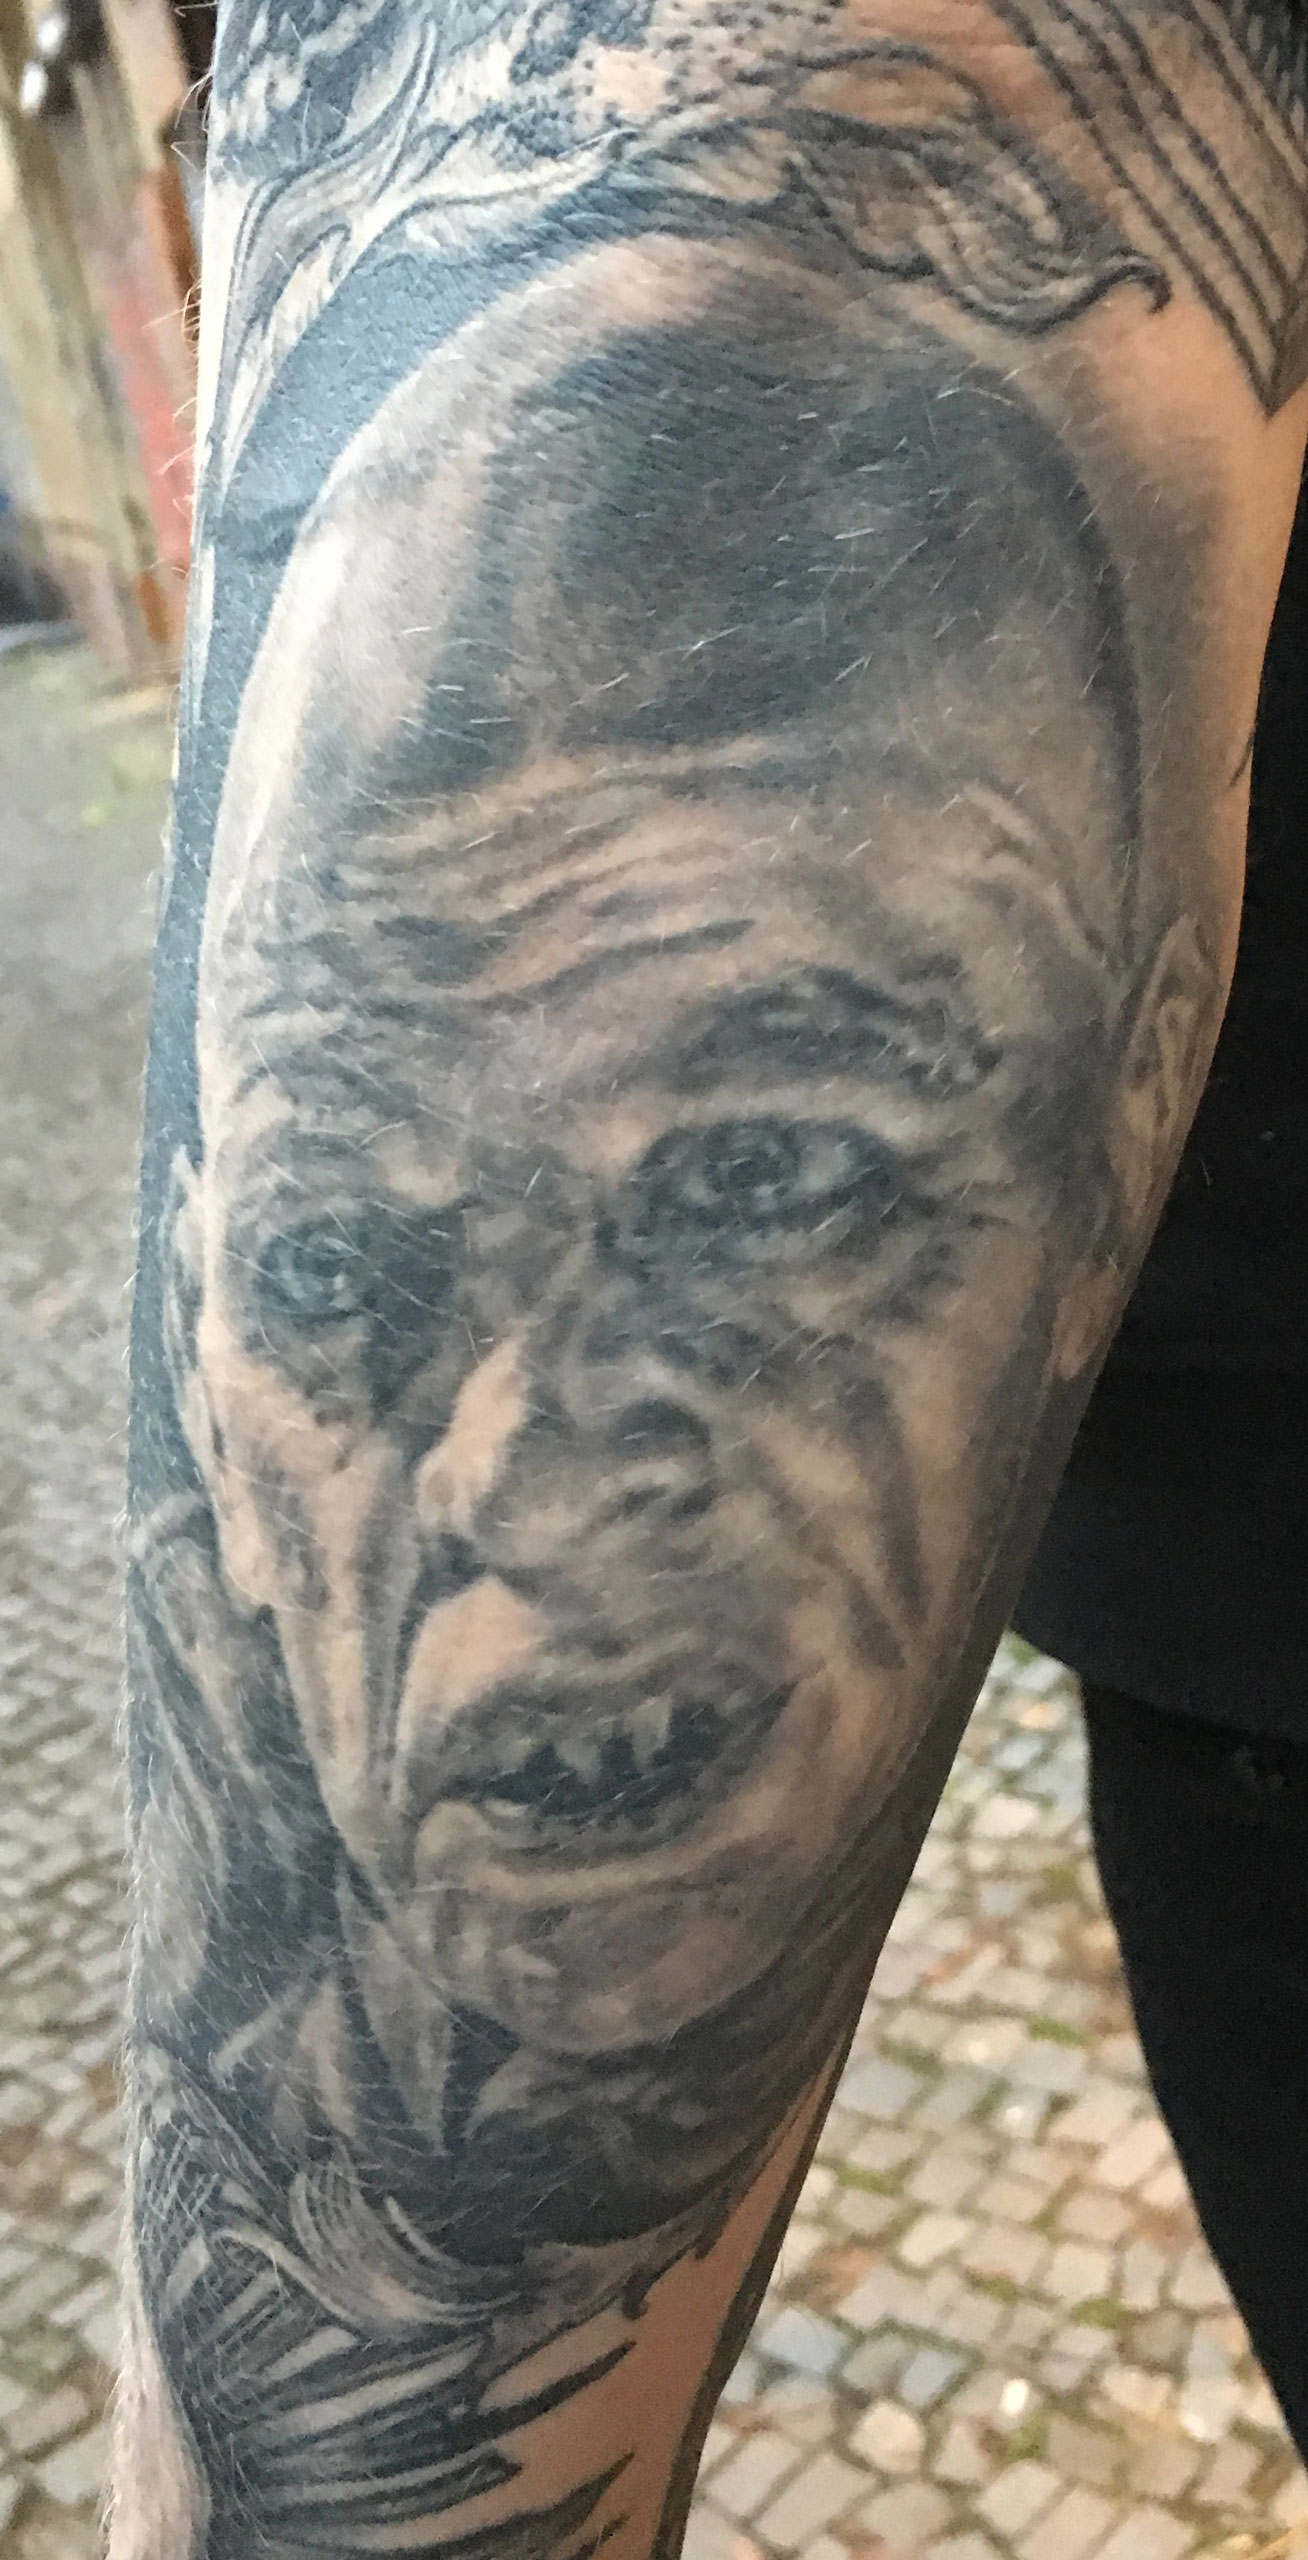 Black and Grey Klaus Kinsky Nosferatu Vampire Portrait Tattoo, (healed and 5 years old in this photo) Inferno Metal Fest, Norway